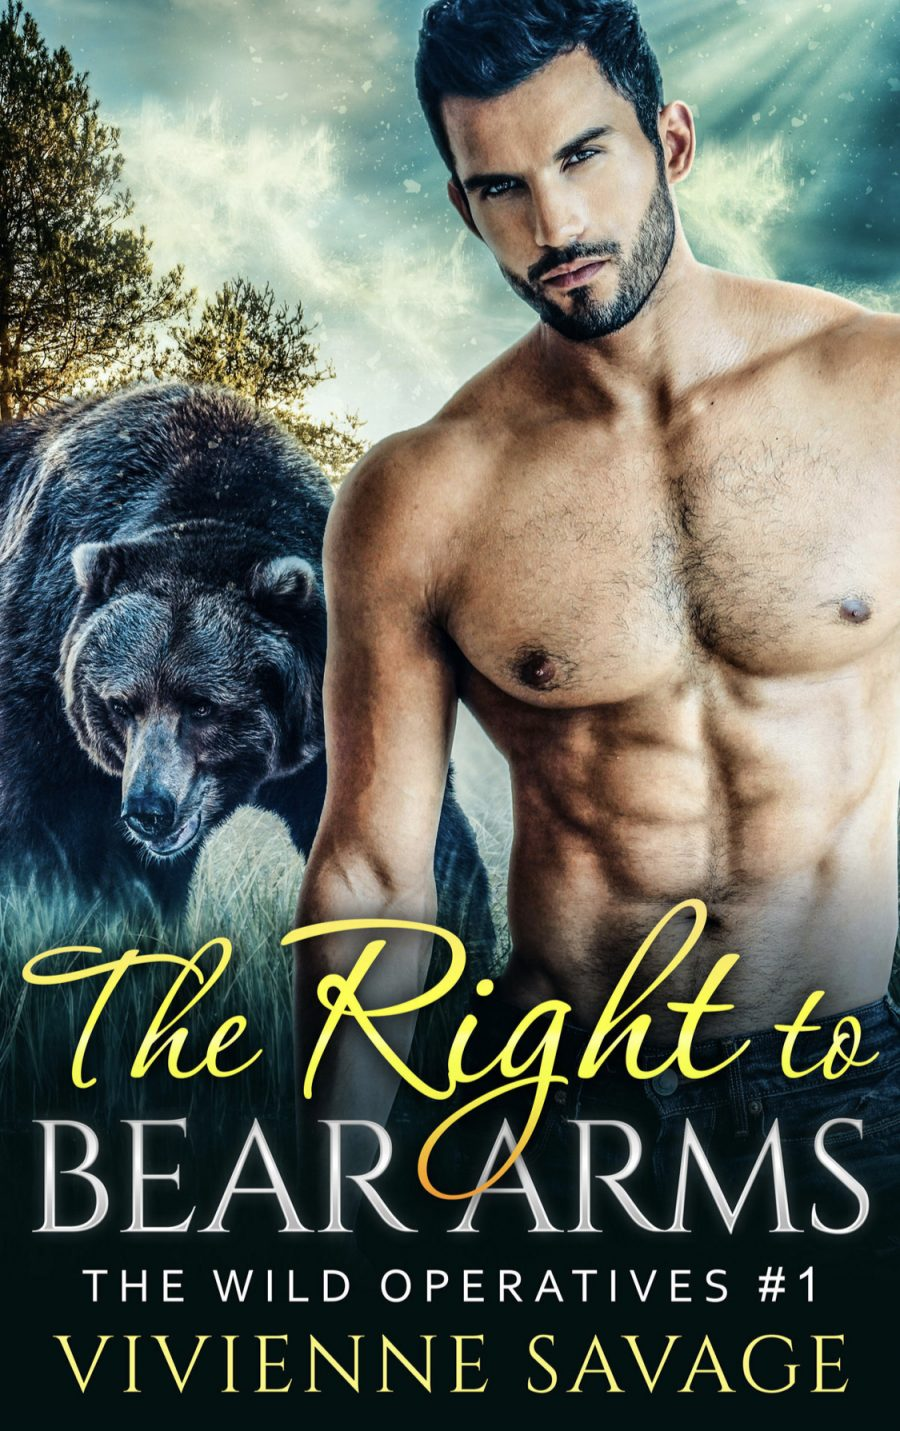 The Right to Bear Arms by Vivienne Savage - A Book Review #BookReview #PNR #Shifter #HEA #OlderBook #StandAloneWithinSeries #BBW #Short